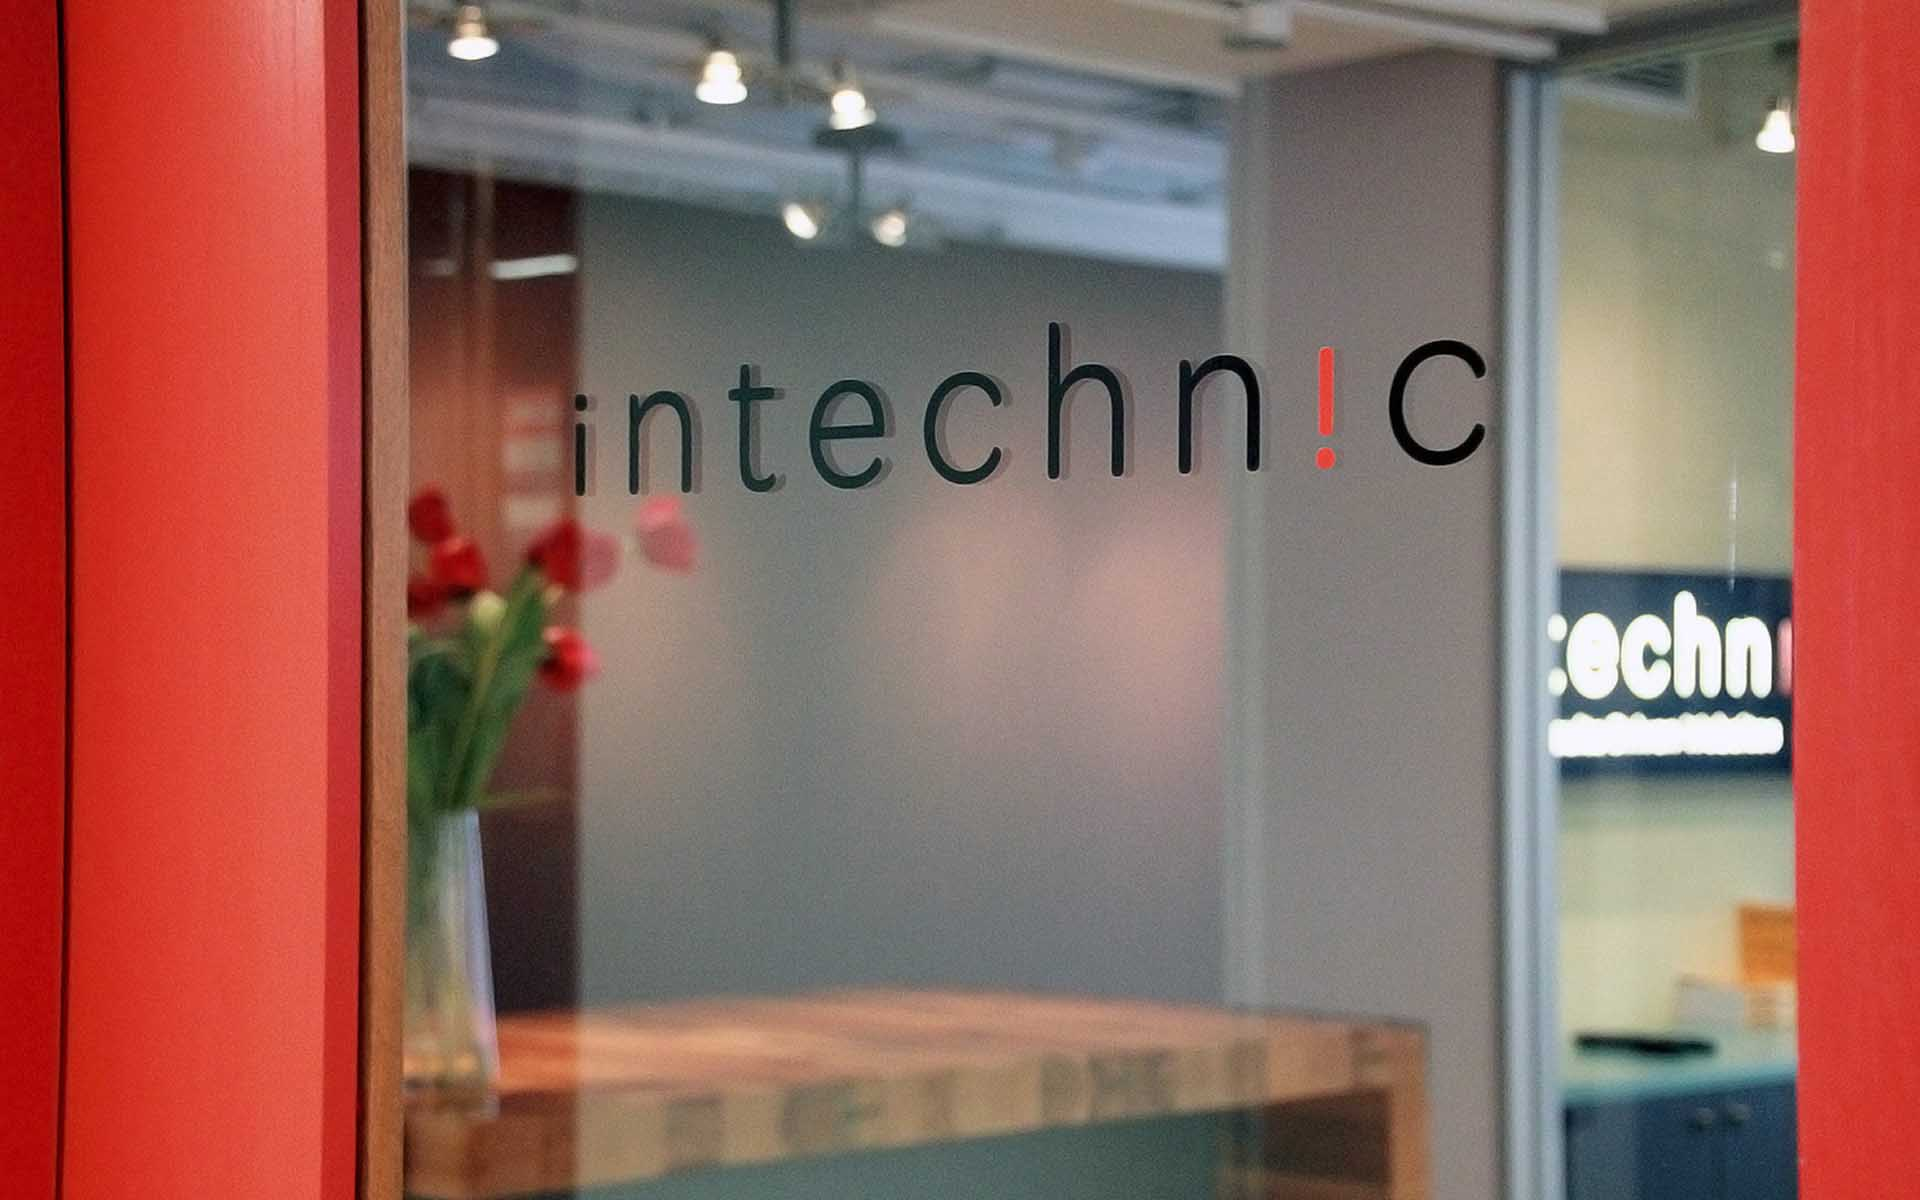 Intechnic's New Headquarters is among the Top 5 Coolest Offices in Chicago